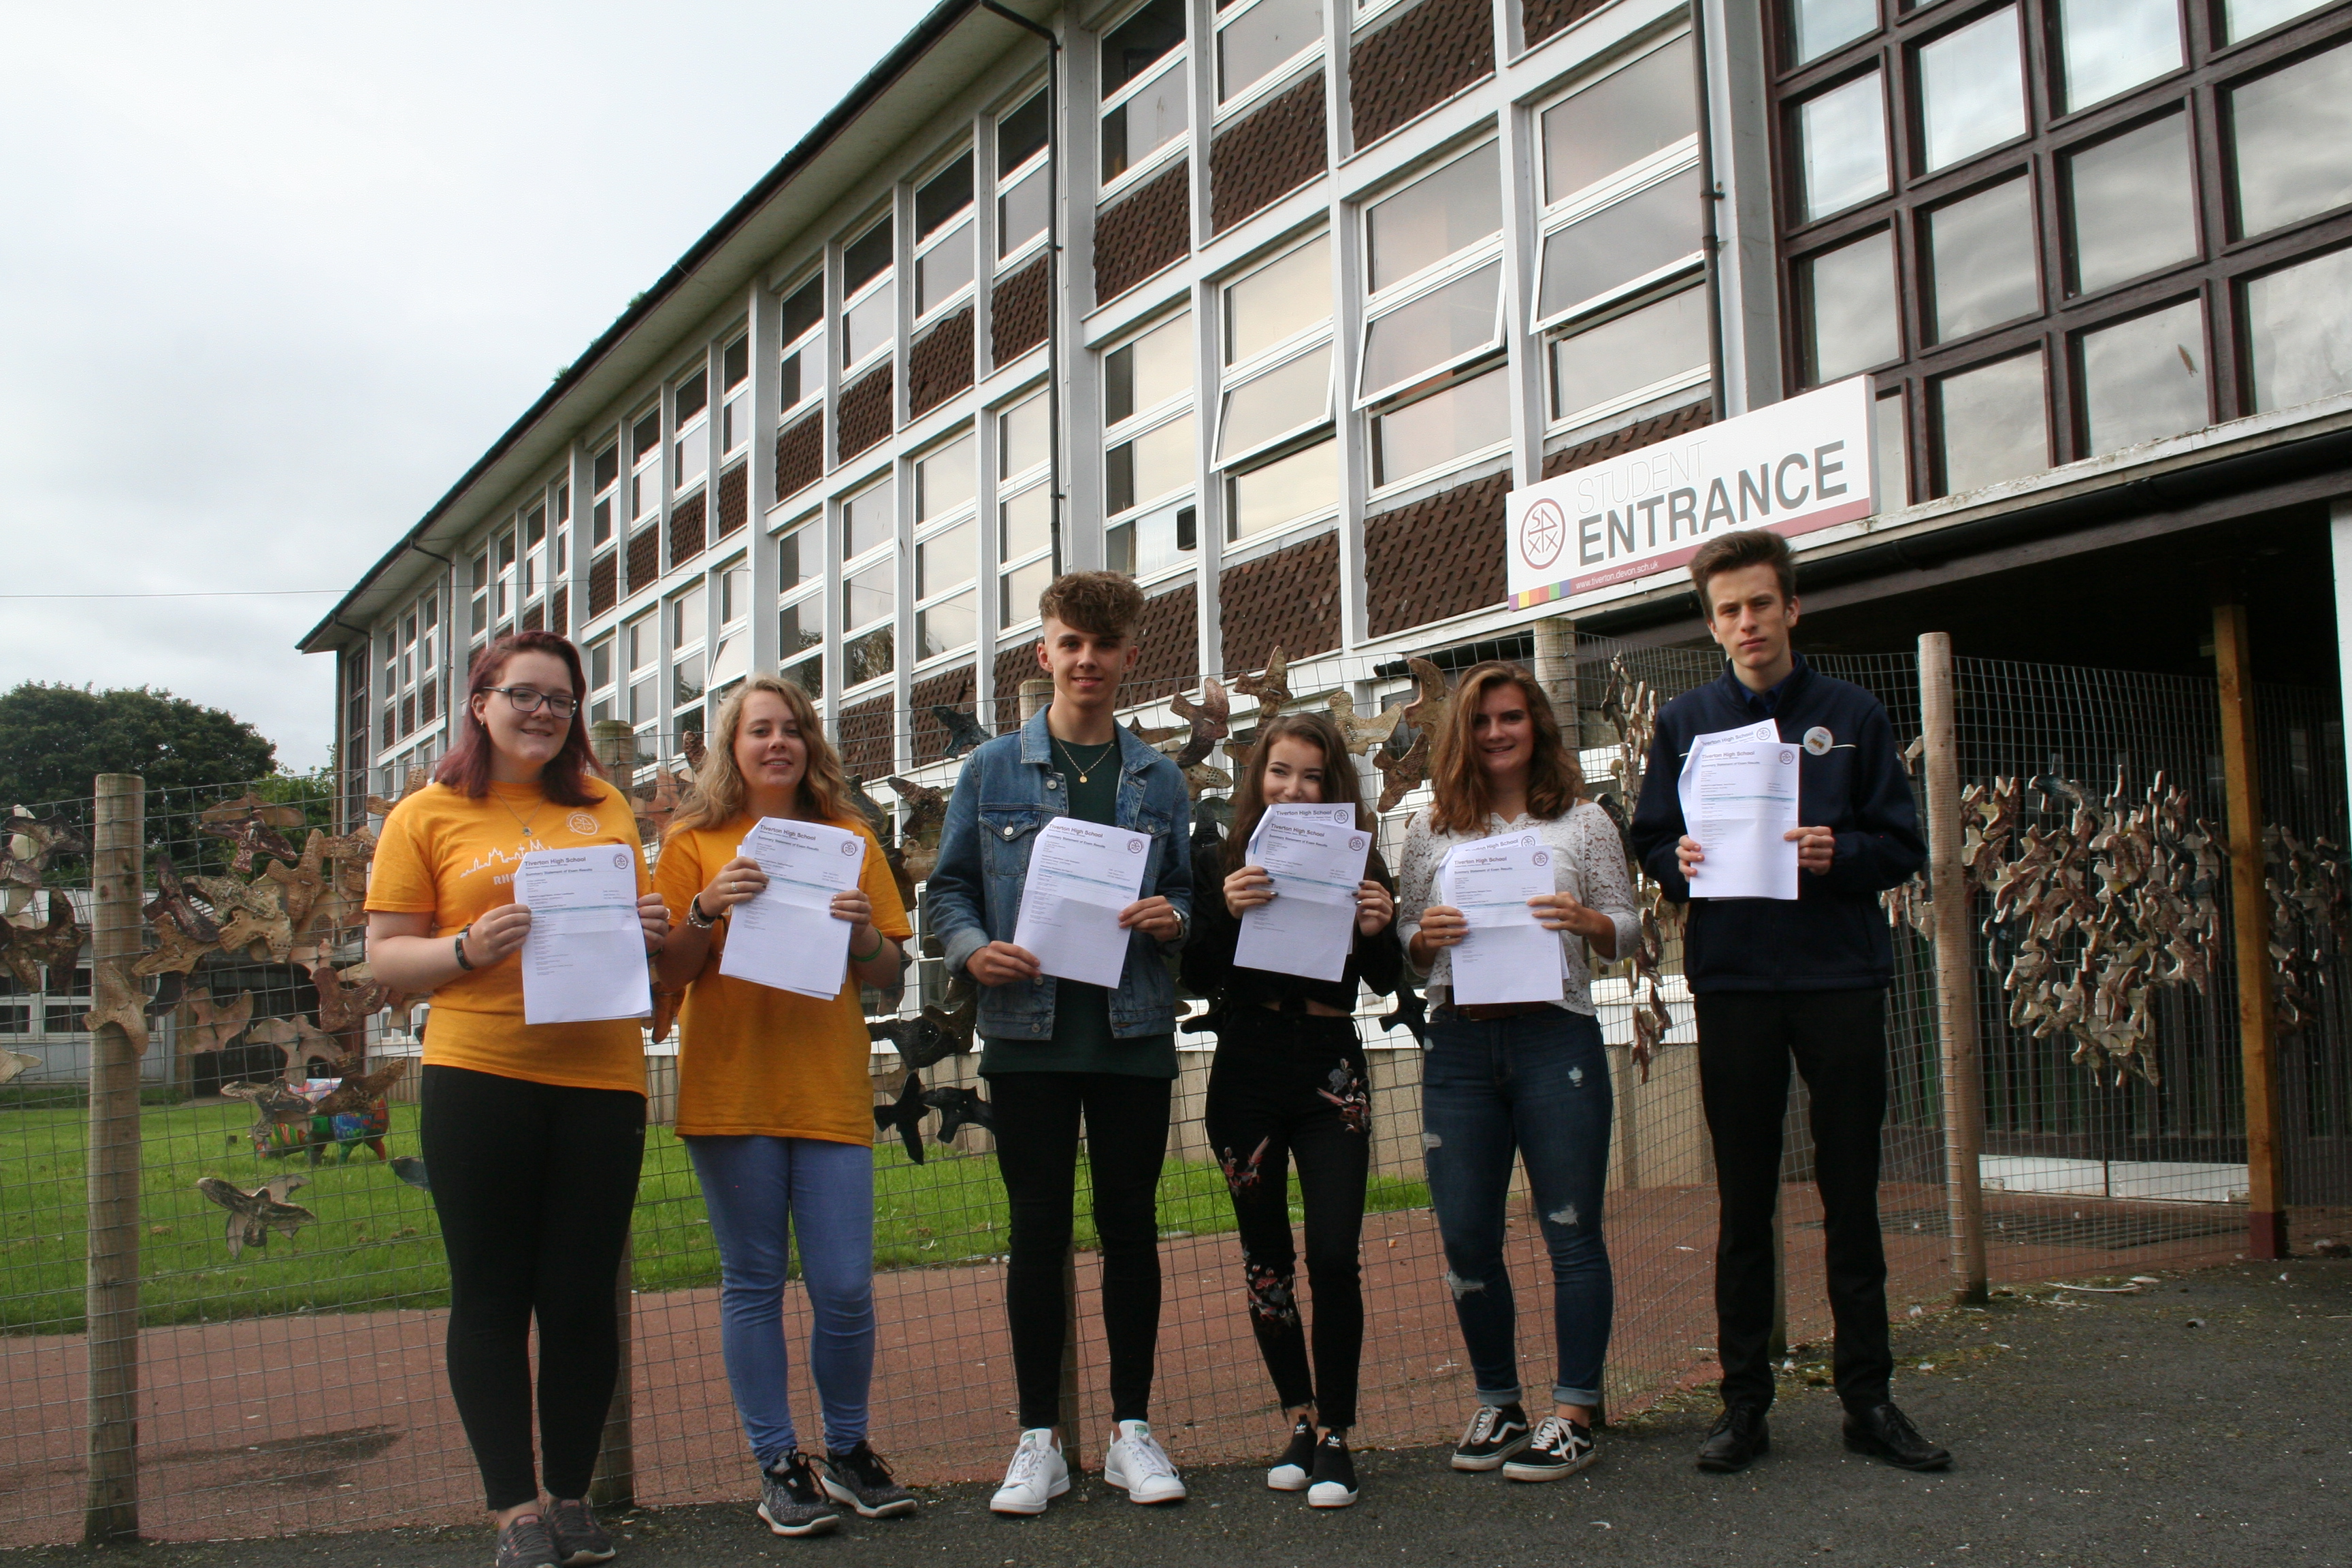 Best ever GCSE results for Tiverton High School - Tiverton High School